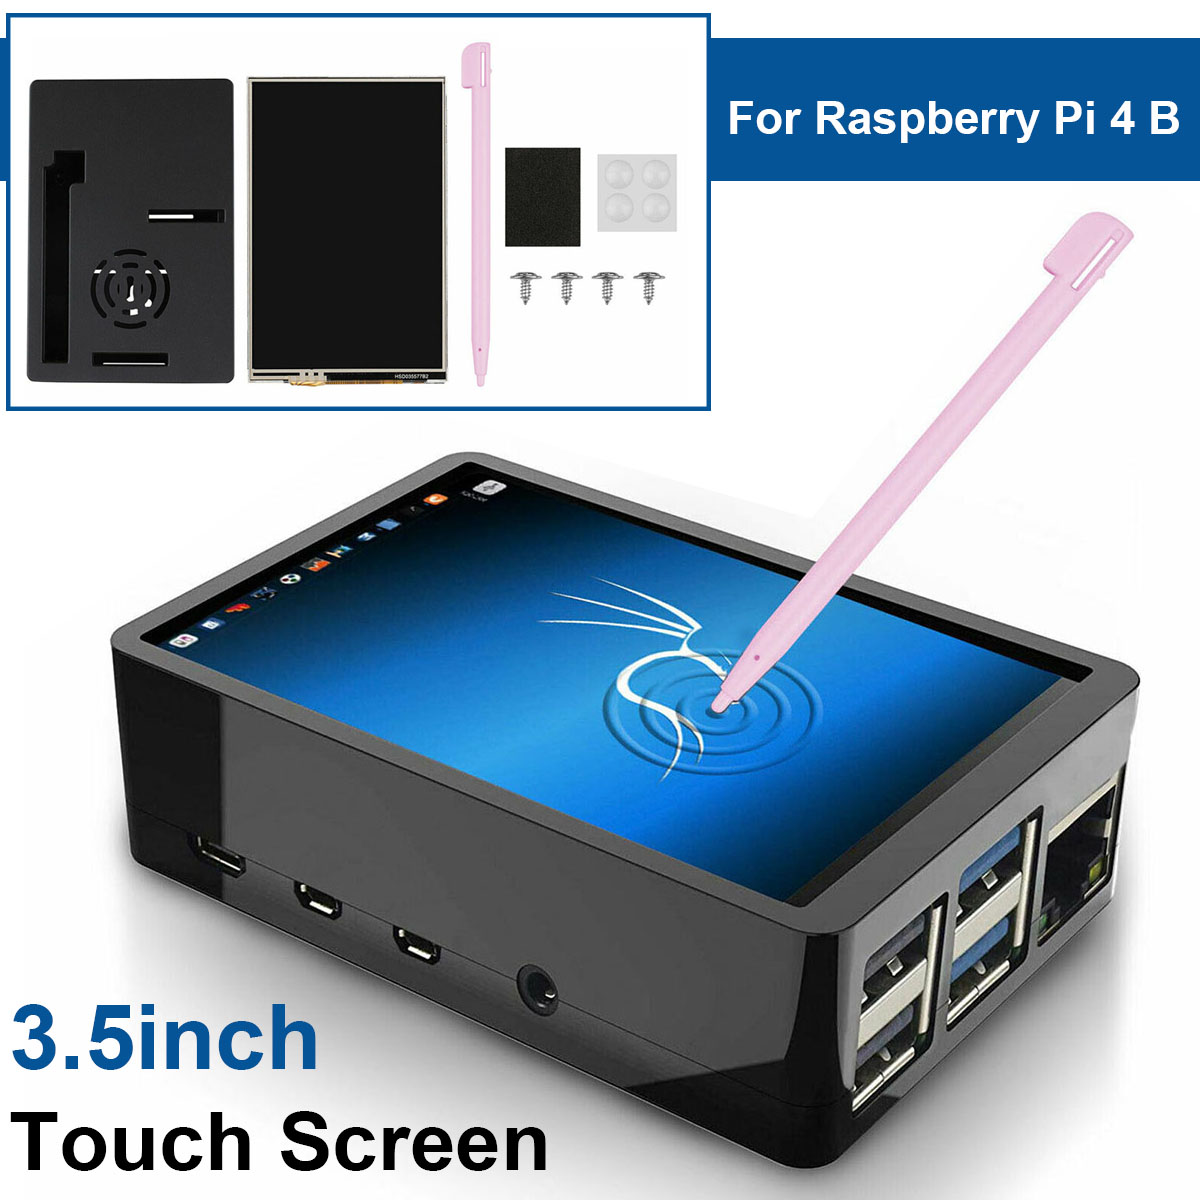 3.5 Inch TFT LCD Touch Screen + ABS Case + Touch Pen LCD Display HDMI Input Monitor Kit For Raspberry Pi 4 B